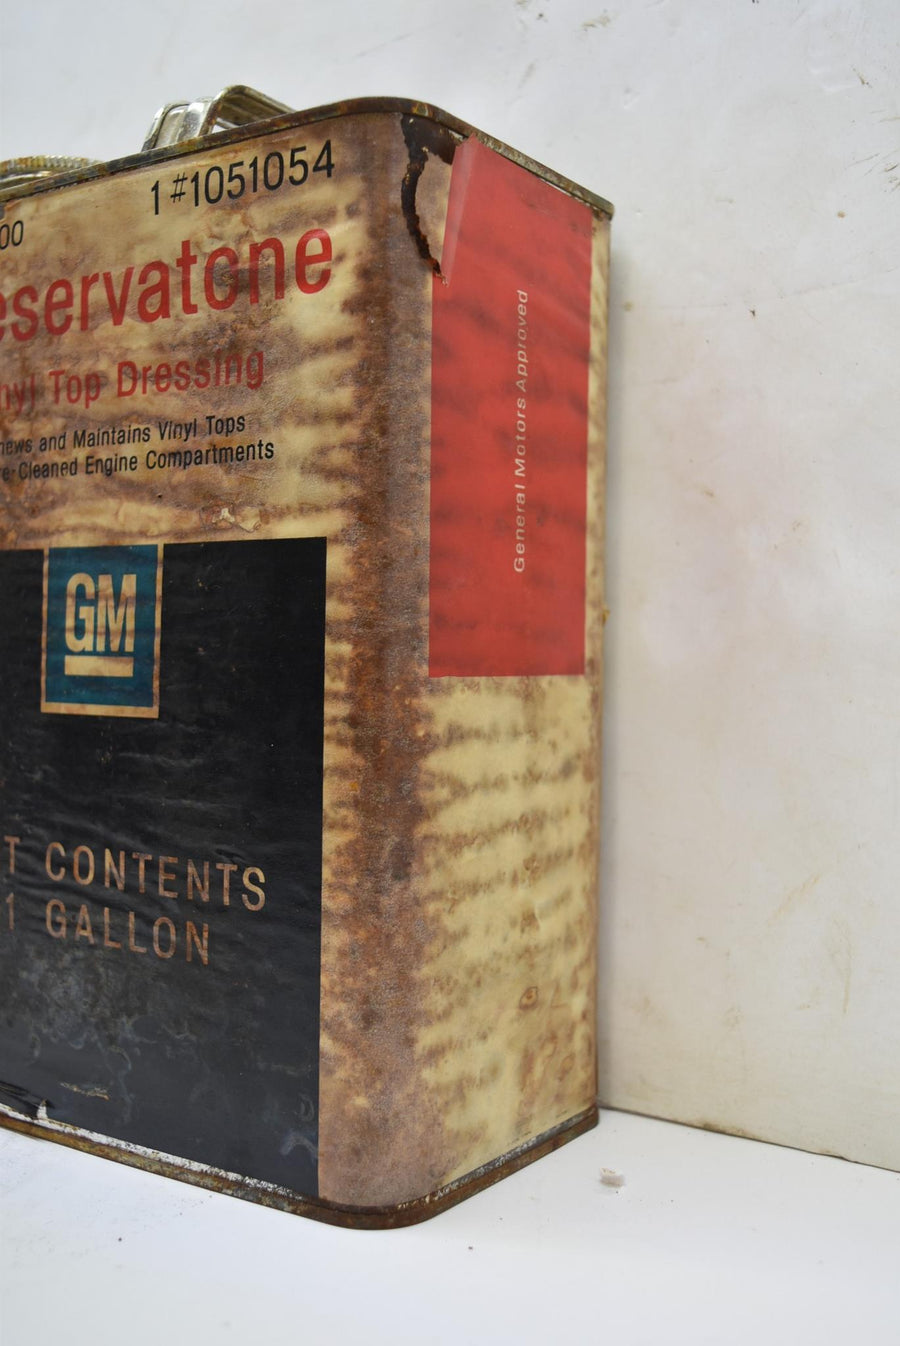 Authentic Vintage GM Preservatone Vinyl Top Dressing Man Cave NOS FULL CAN Decor